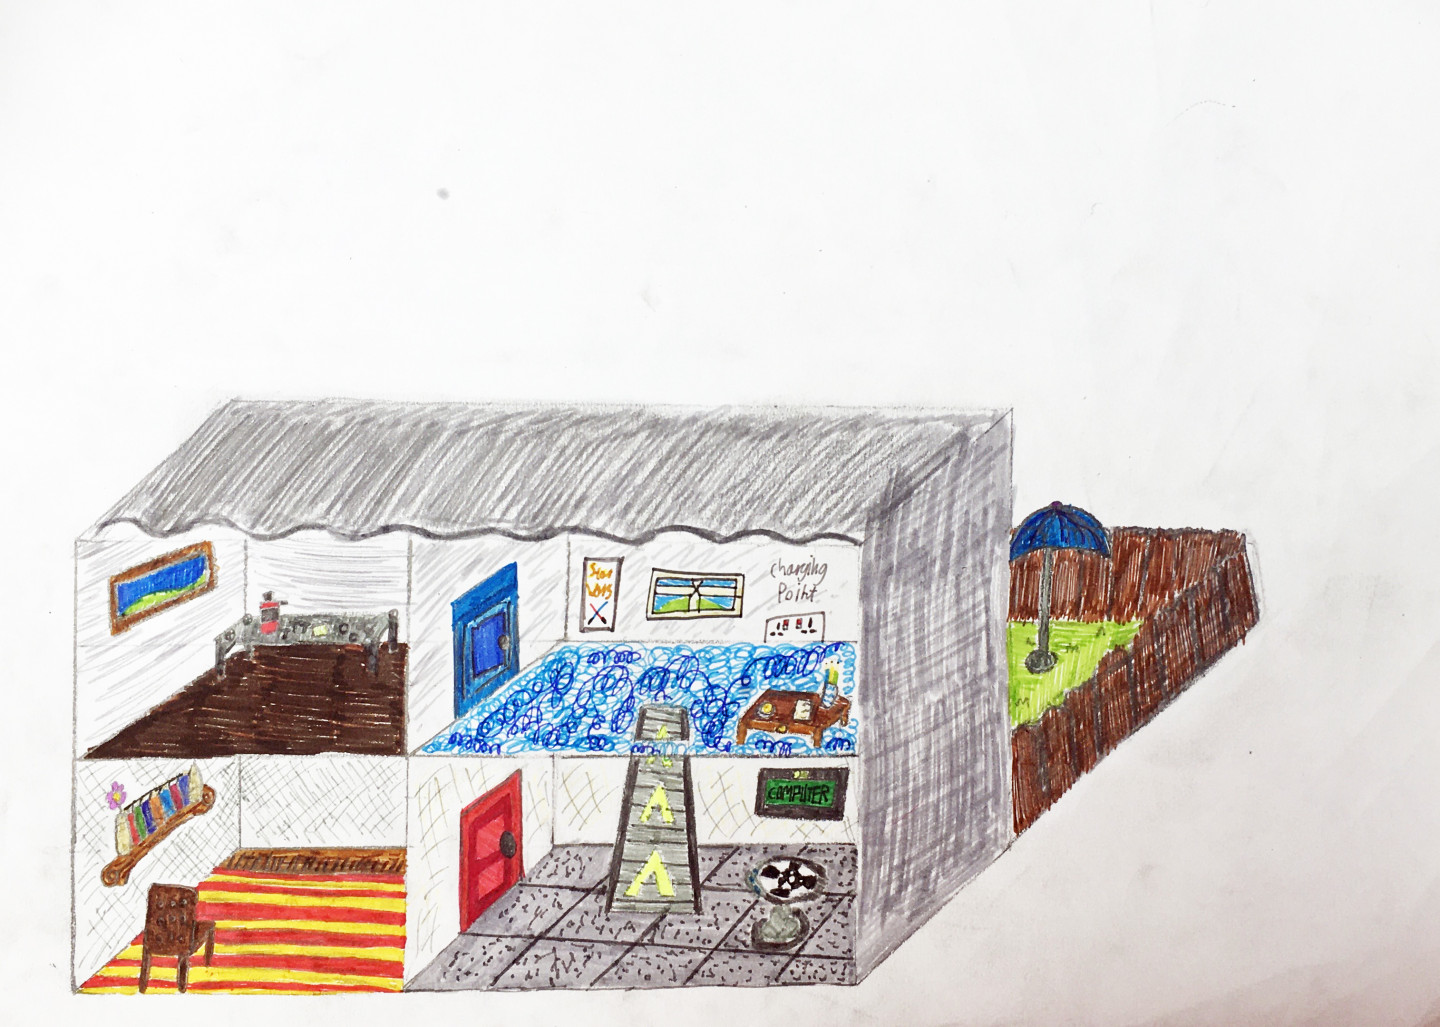 RUNNER UP - SETH, AGE 12.  A home for R2-D2. My design contains 4 rooms and a garden. The first room is a living room with a blank wall. This is more useful than a TV to R2-D2 because he can project any film or TV show he wants to watch out of his built-in projector. Due to his shape and stature he doesn't need to sit down. However, there is a chair in the living room in case his best friend C3PO visits. The next room along contains a hollochess board as seen in the Star Wars movies. There is also a touchscreen computer in the wall. In the middle of the room there is a conveyor belt which leads upto R2-D2 's bedroom on the second floor. Even though it's a bedroom there is no bed in the room because R2-D2 can sleep standing up. The next room along is a workshop. It is frequently mentioned in the movies that R2-D2 is an avid mechanic and engineer so this gives him a chance to enjoy his hobby. His garden has a large umbrella so he doesn't overheat when it's hot.Instead of making the house out of bricks I chose steel which is environmentally friendly, but suits R2-D2 better as he is made entirely of metal himself. Because R2-D2 does not need to eat or drink there is no requirement for disposable plastic food packaging in his house.